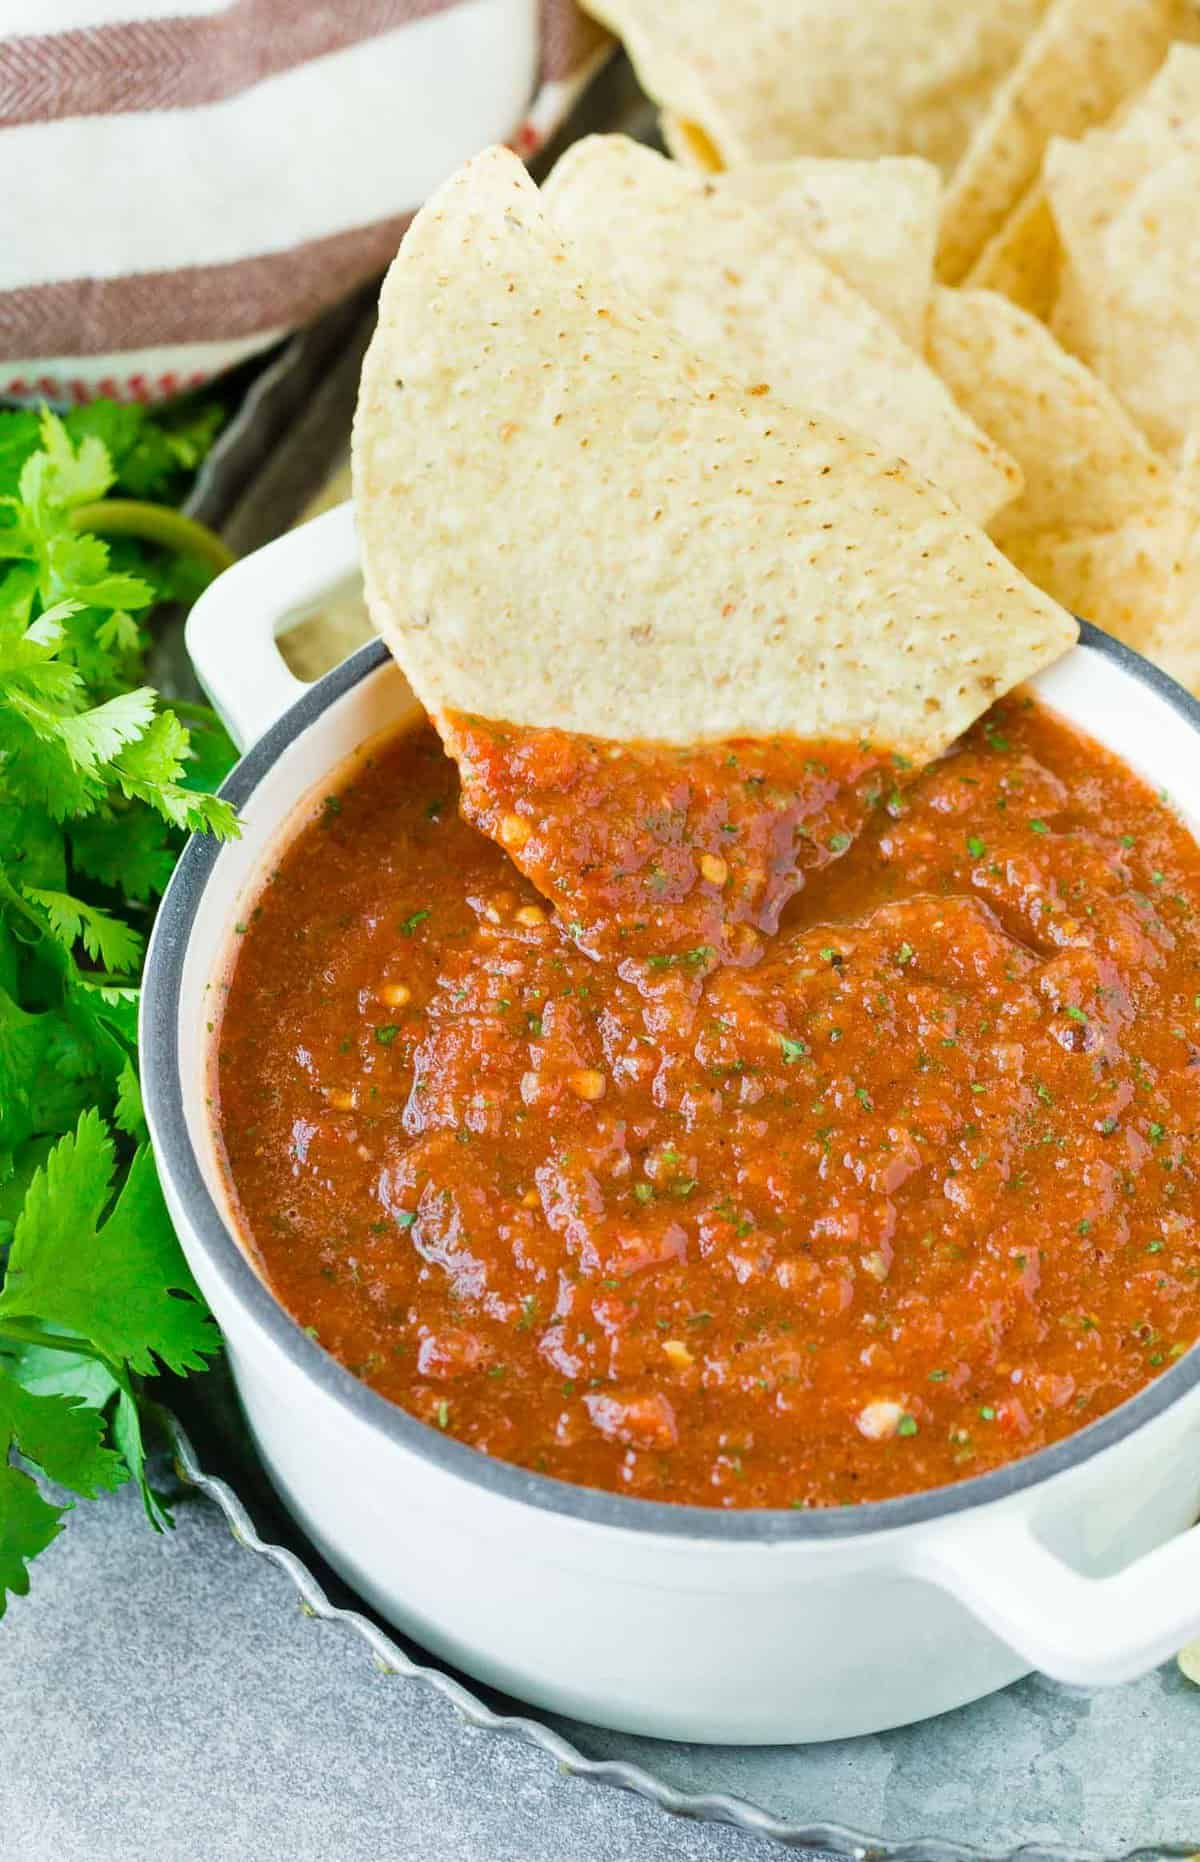 Tortilla chip being dipped into a bowl of salsa.